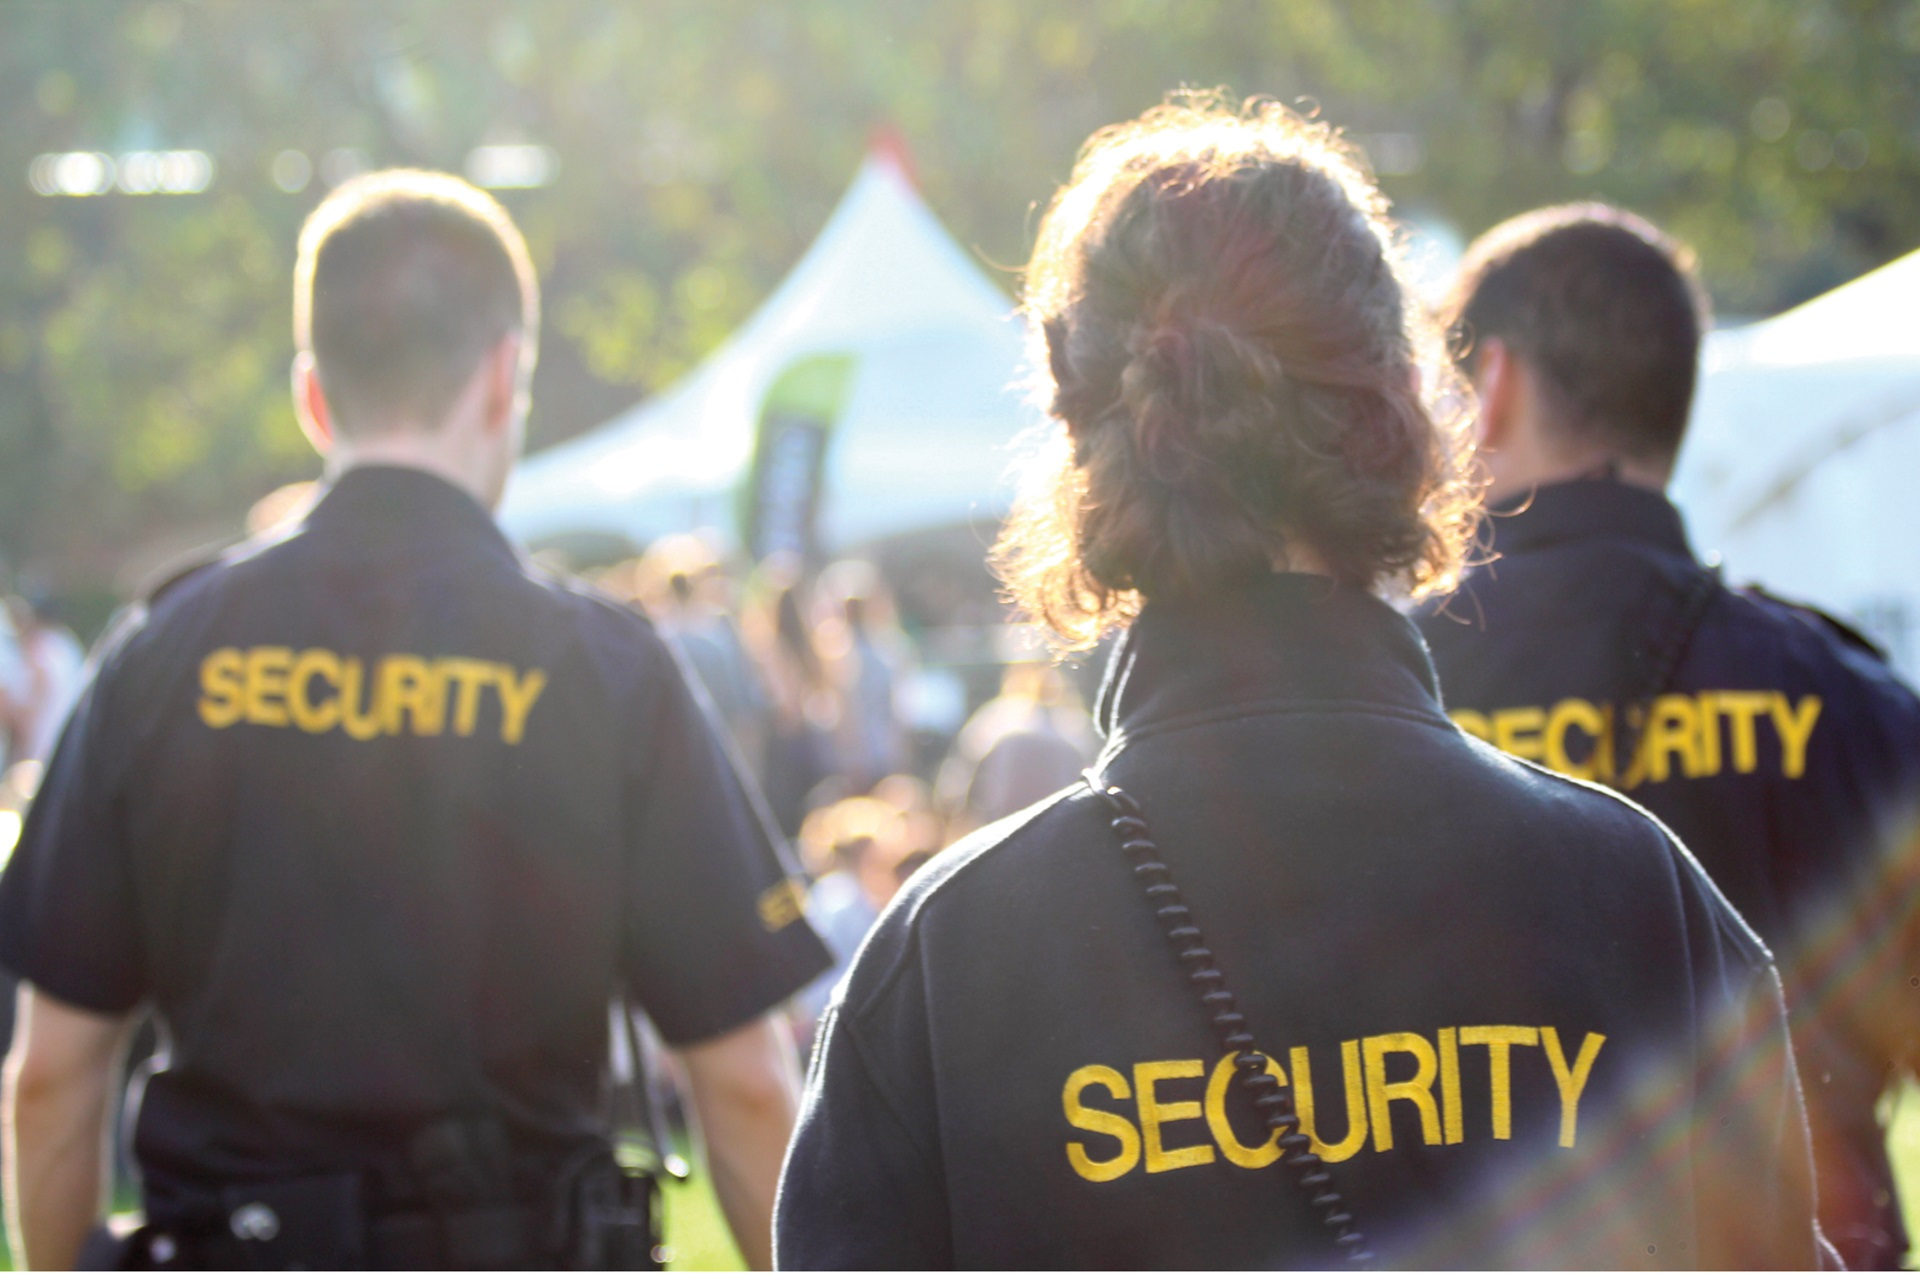 event-security-chch